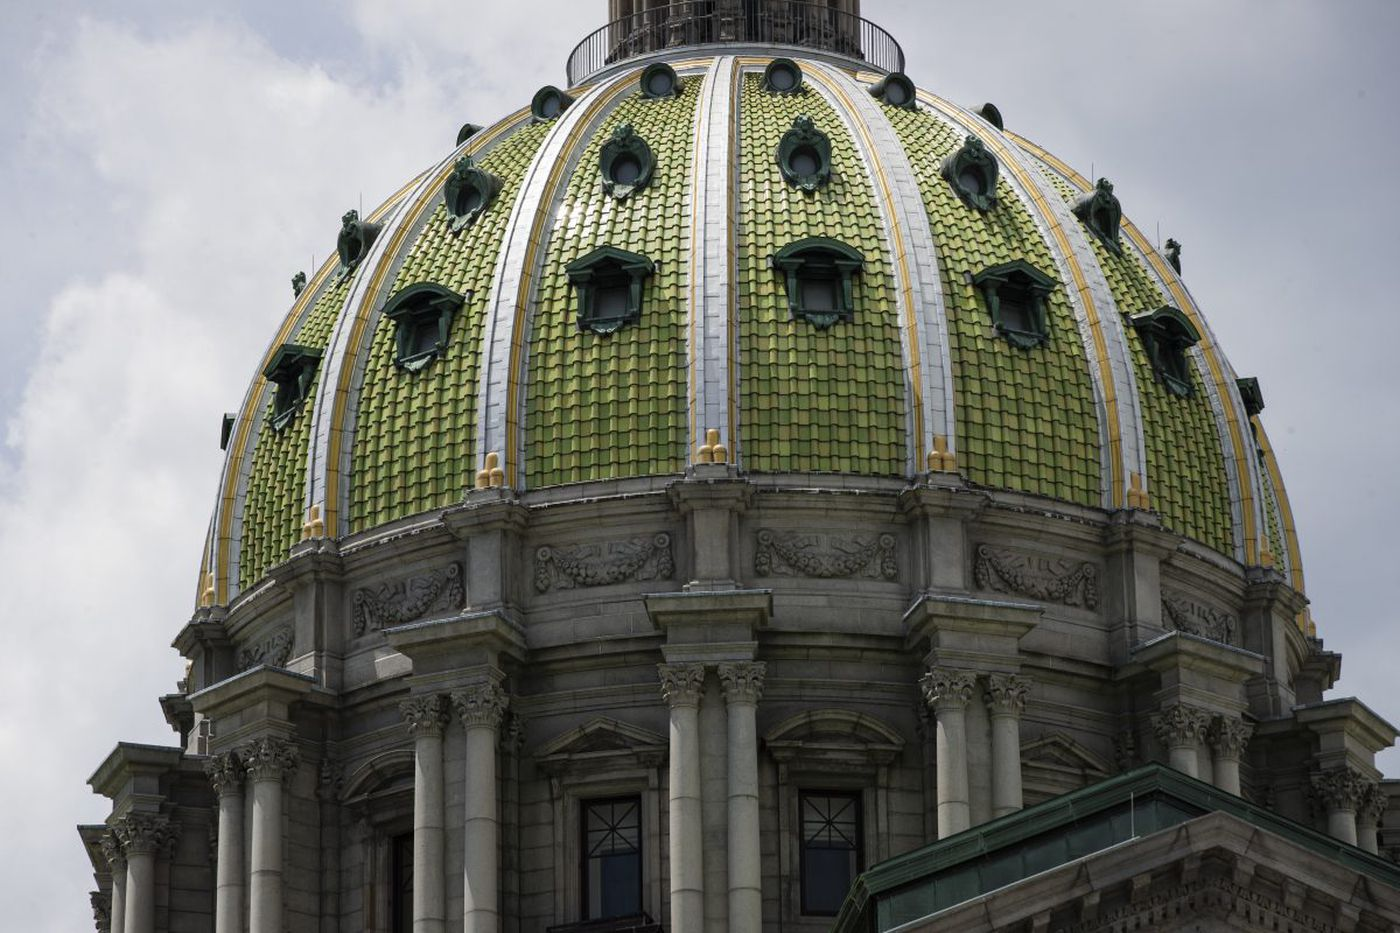 As Pa. looks to fill budget gap, your utility bills could rise